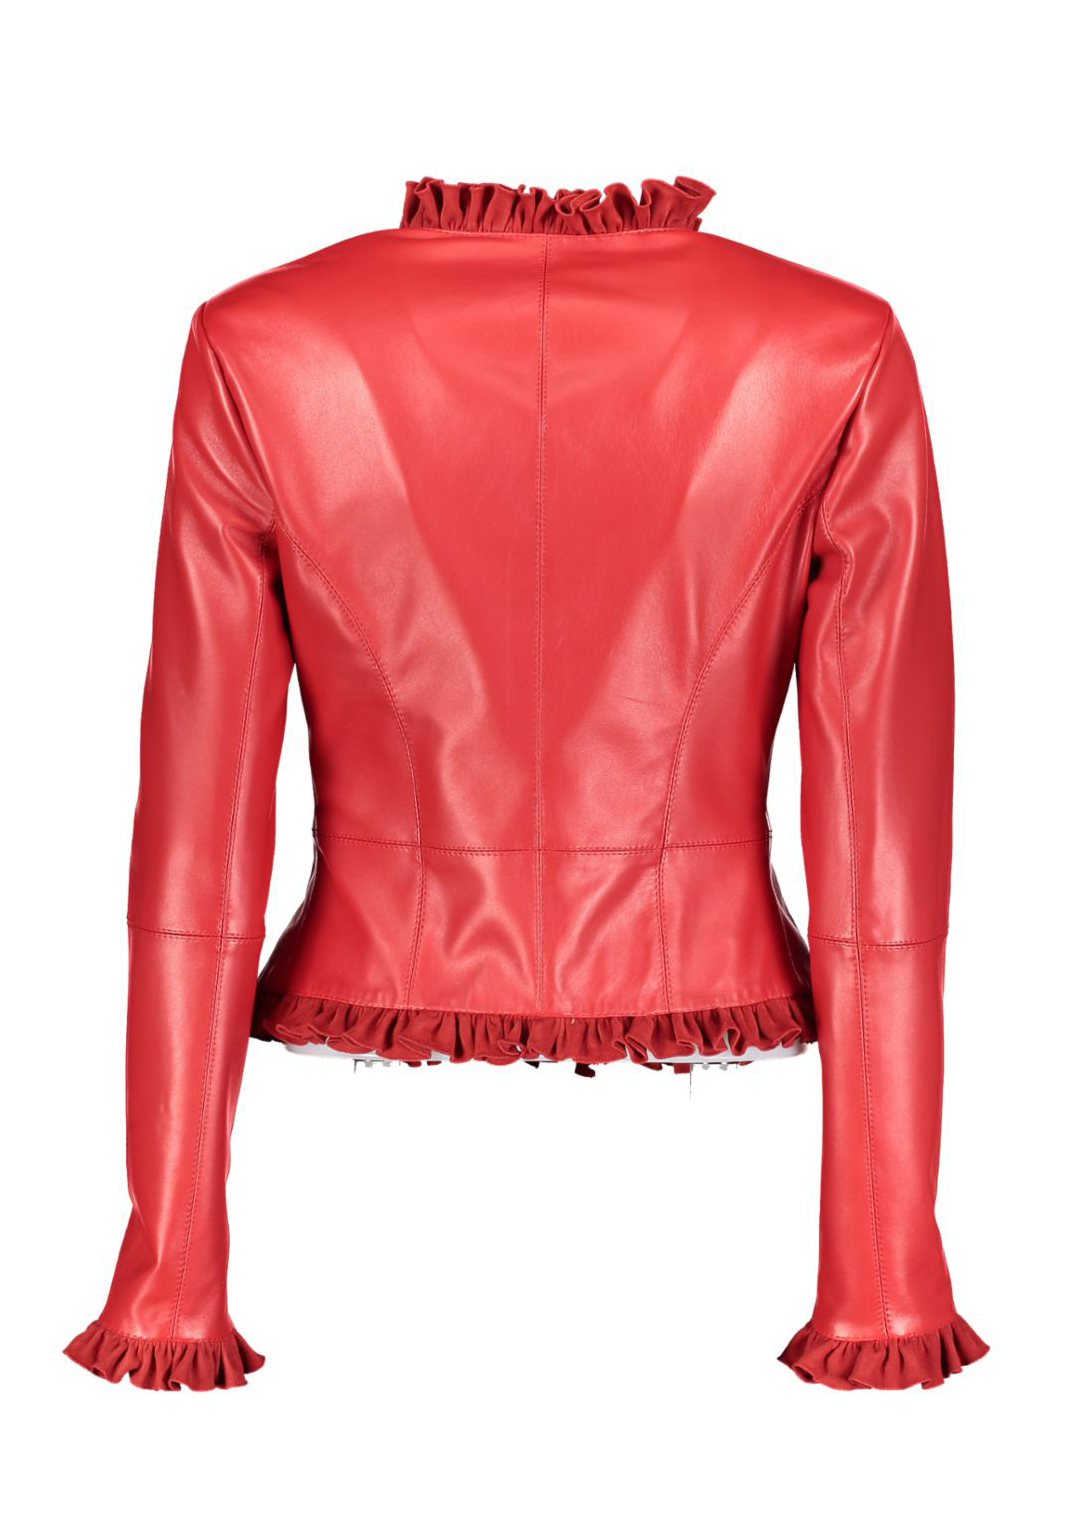 red leather back _Front_JPG2000x2000Fixed